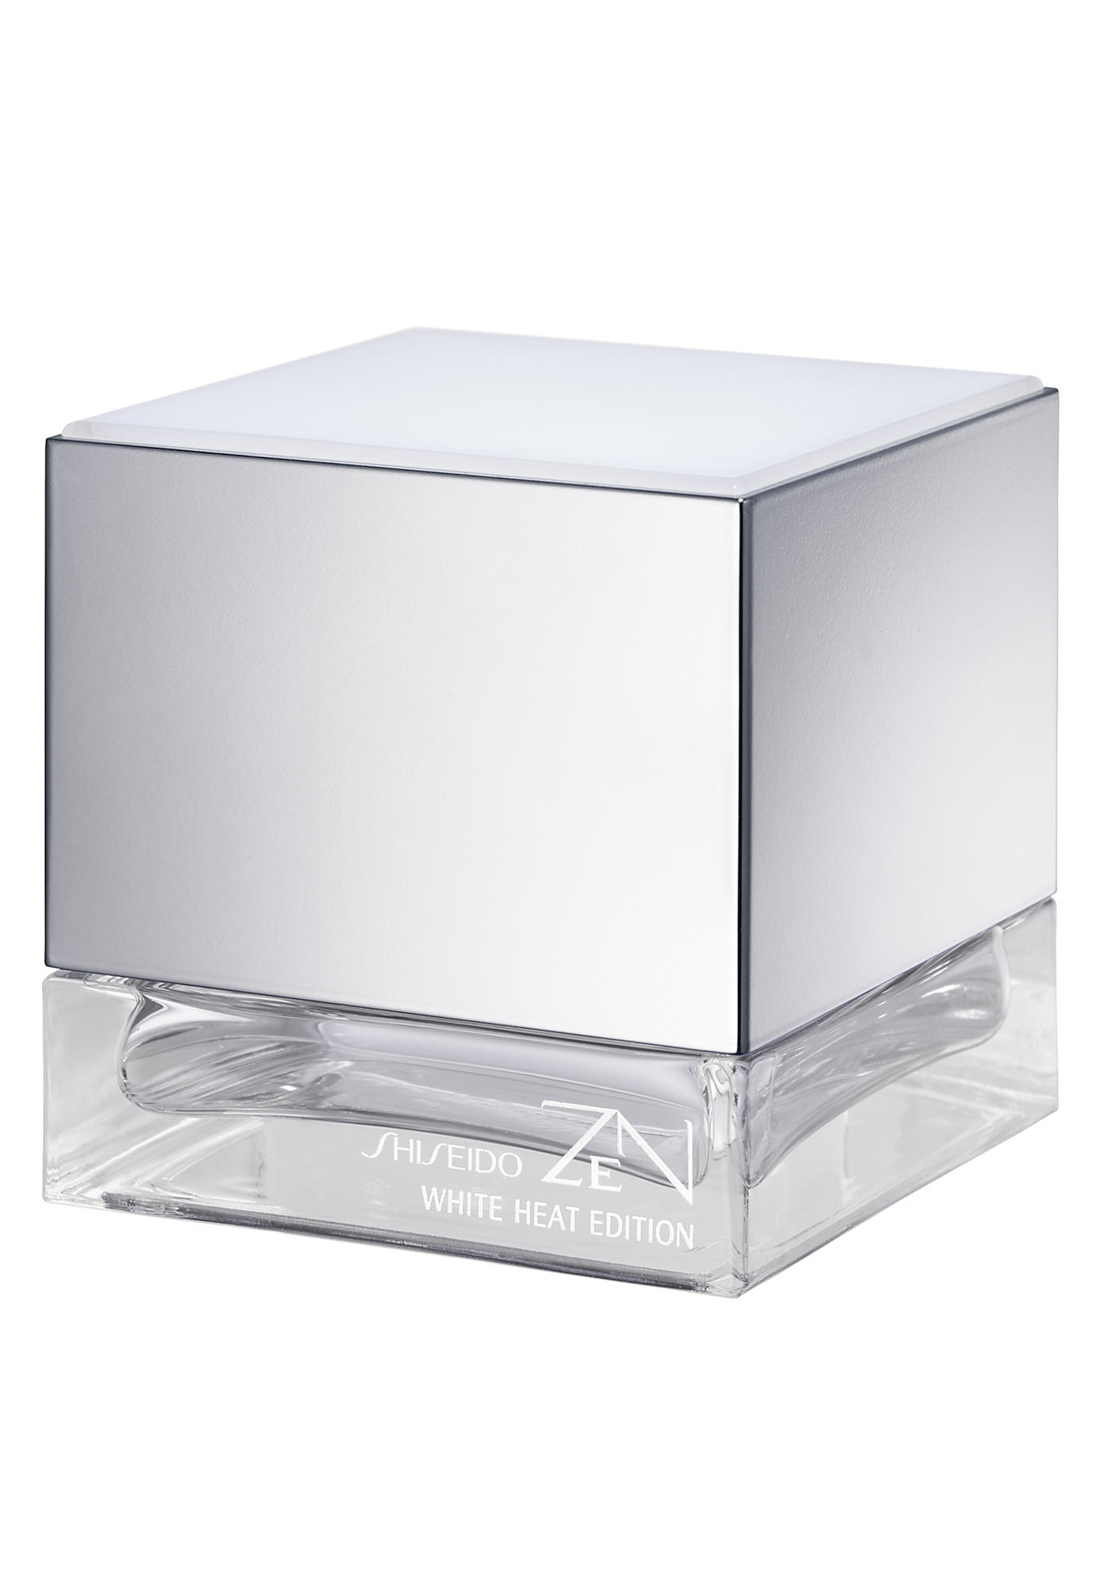 Shiseido Zen for Men White Heat Edition Eau de Toilette, 50ml